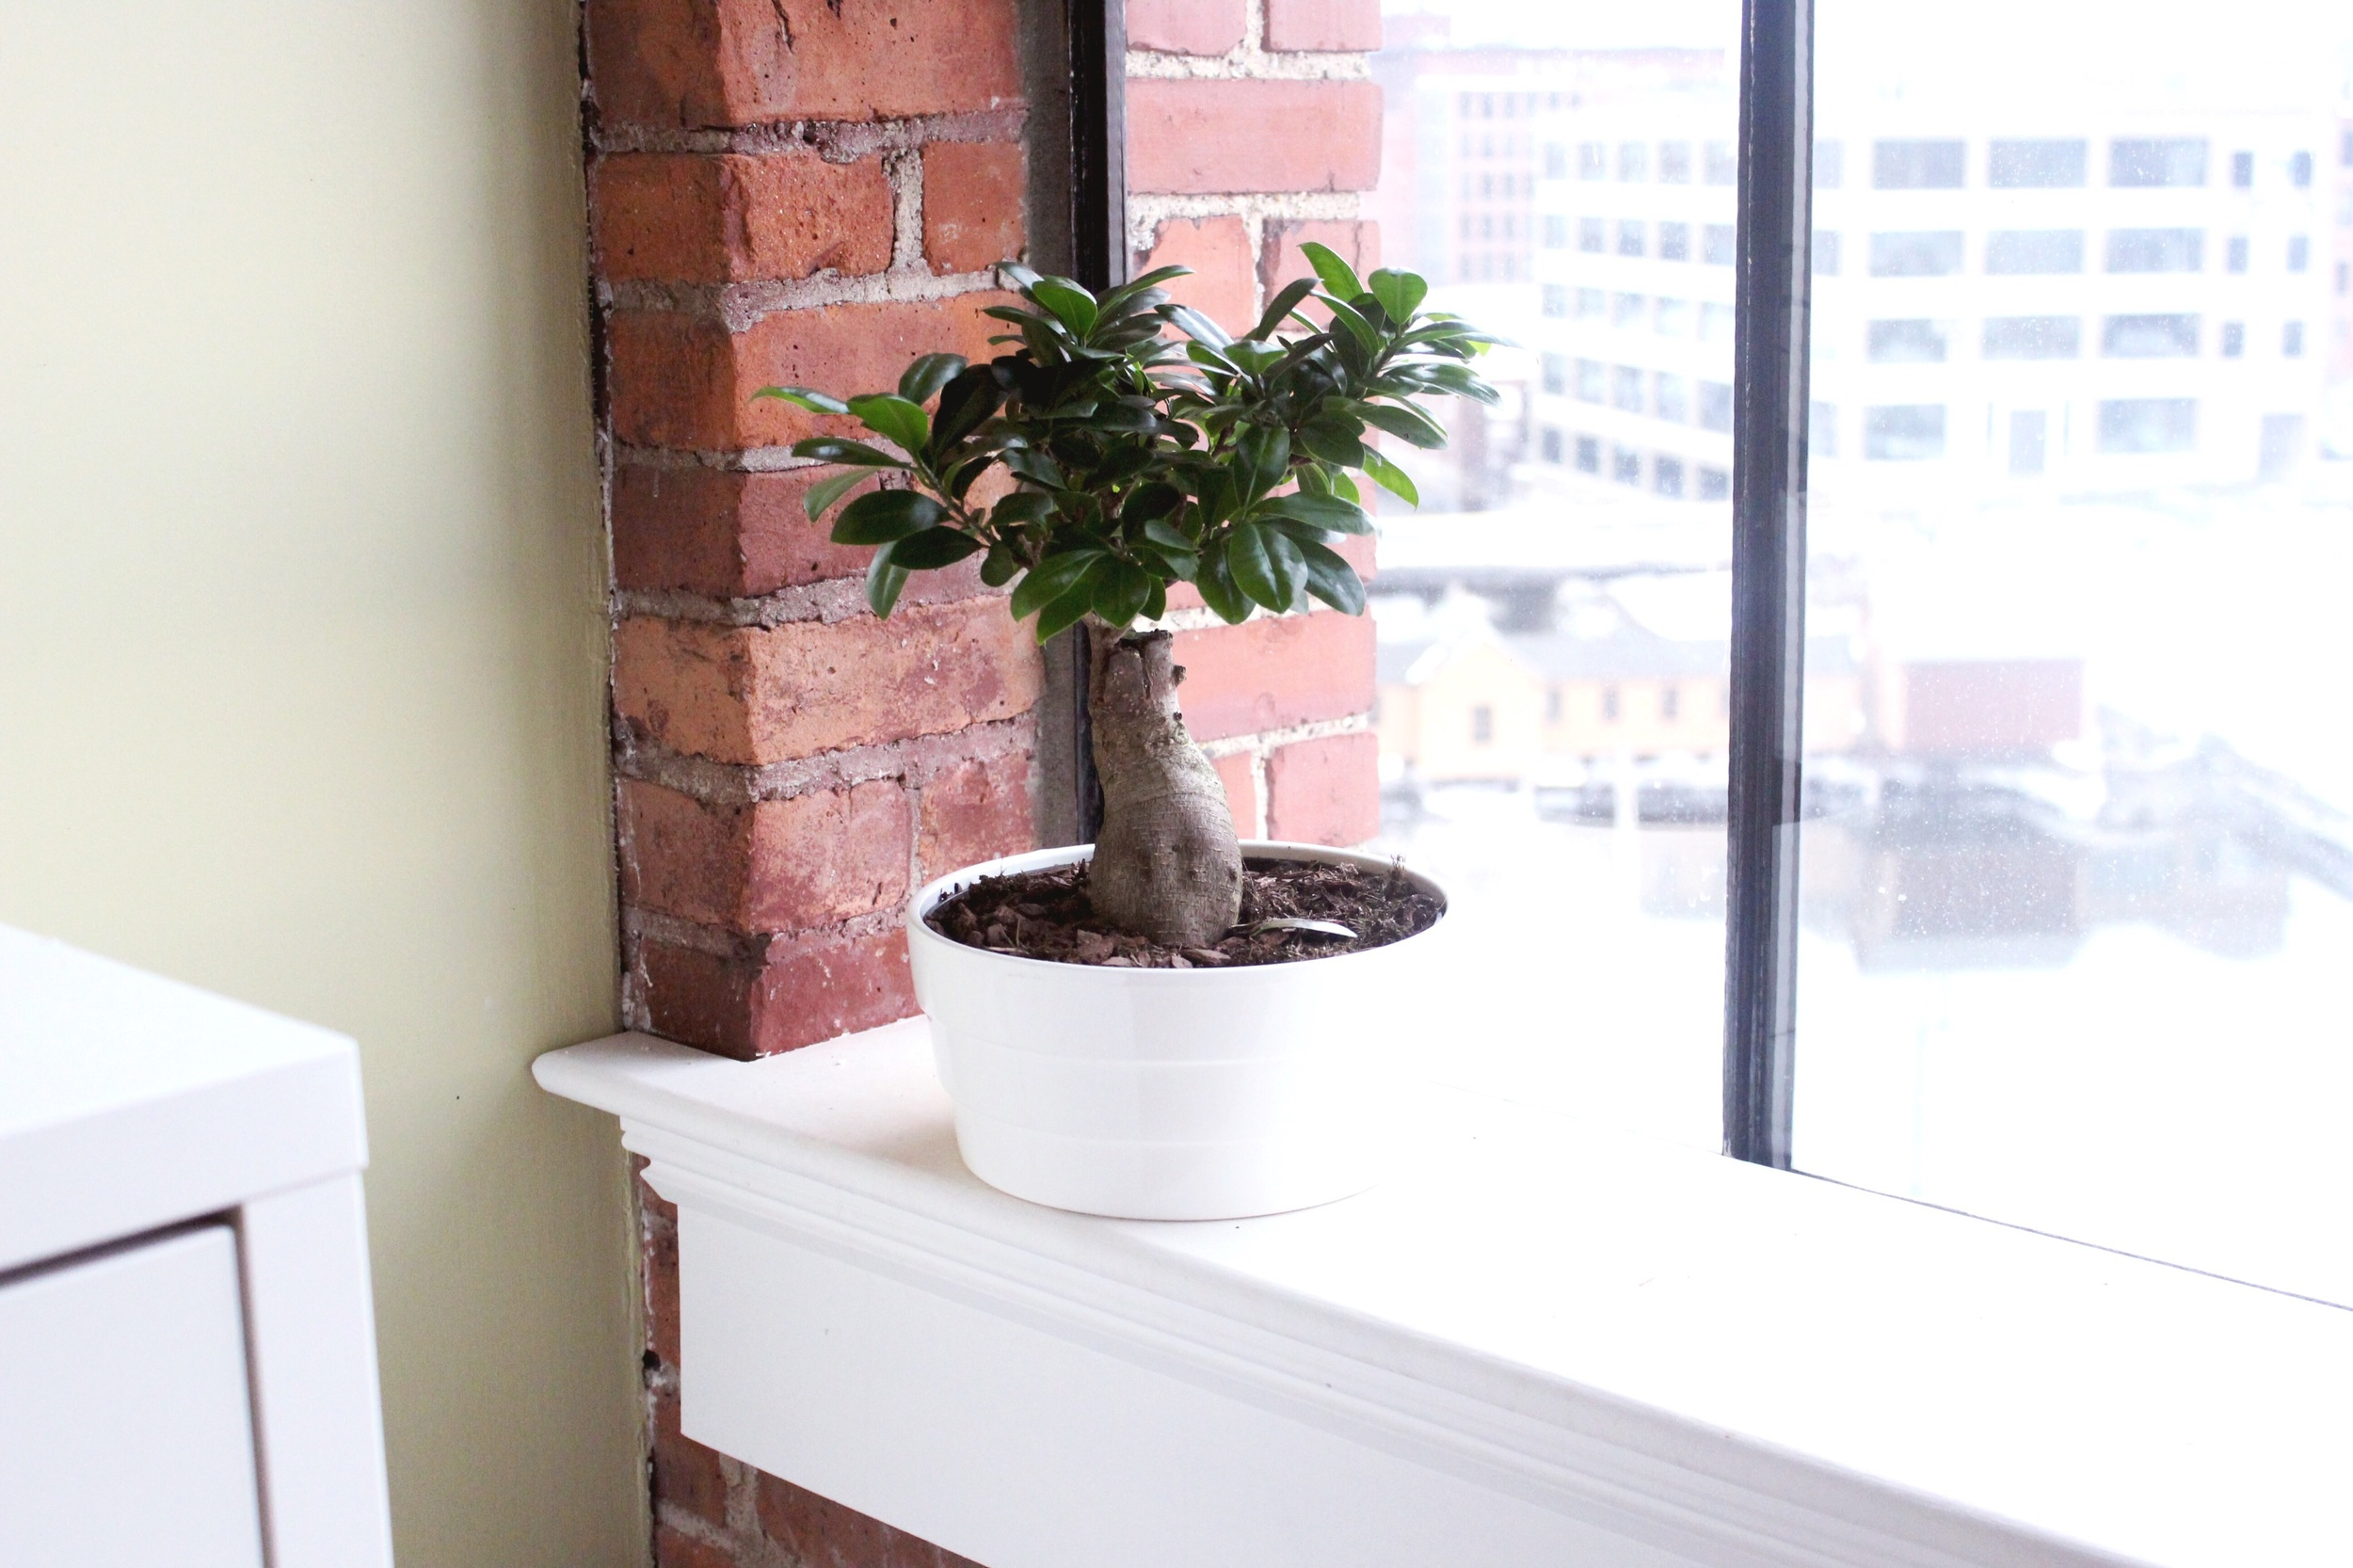 That's Judah, my Bonsai plant. He doesn't take walks and I inhale his waste (what perfect pets are made of)